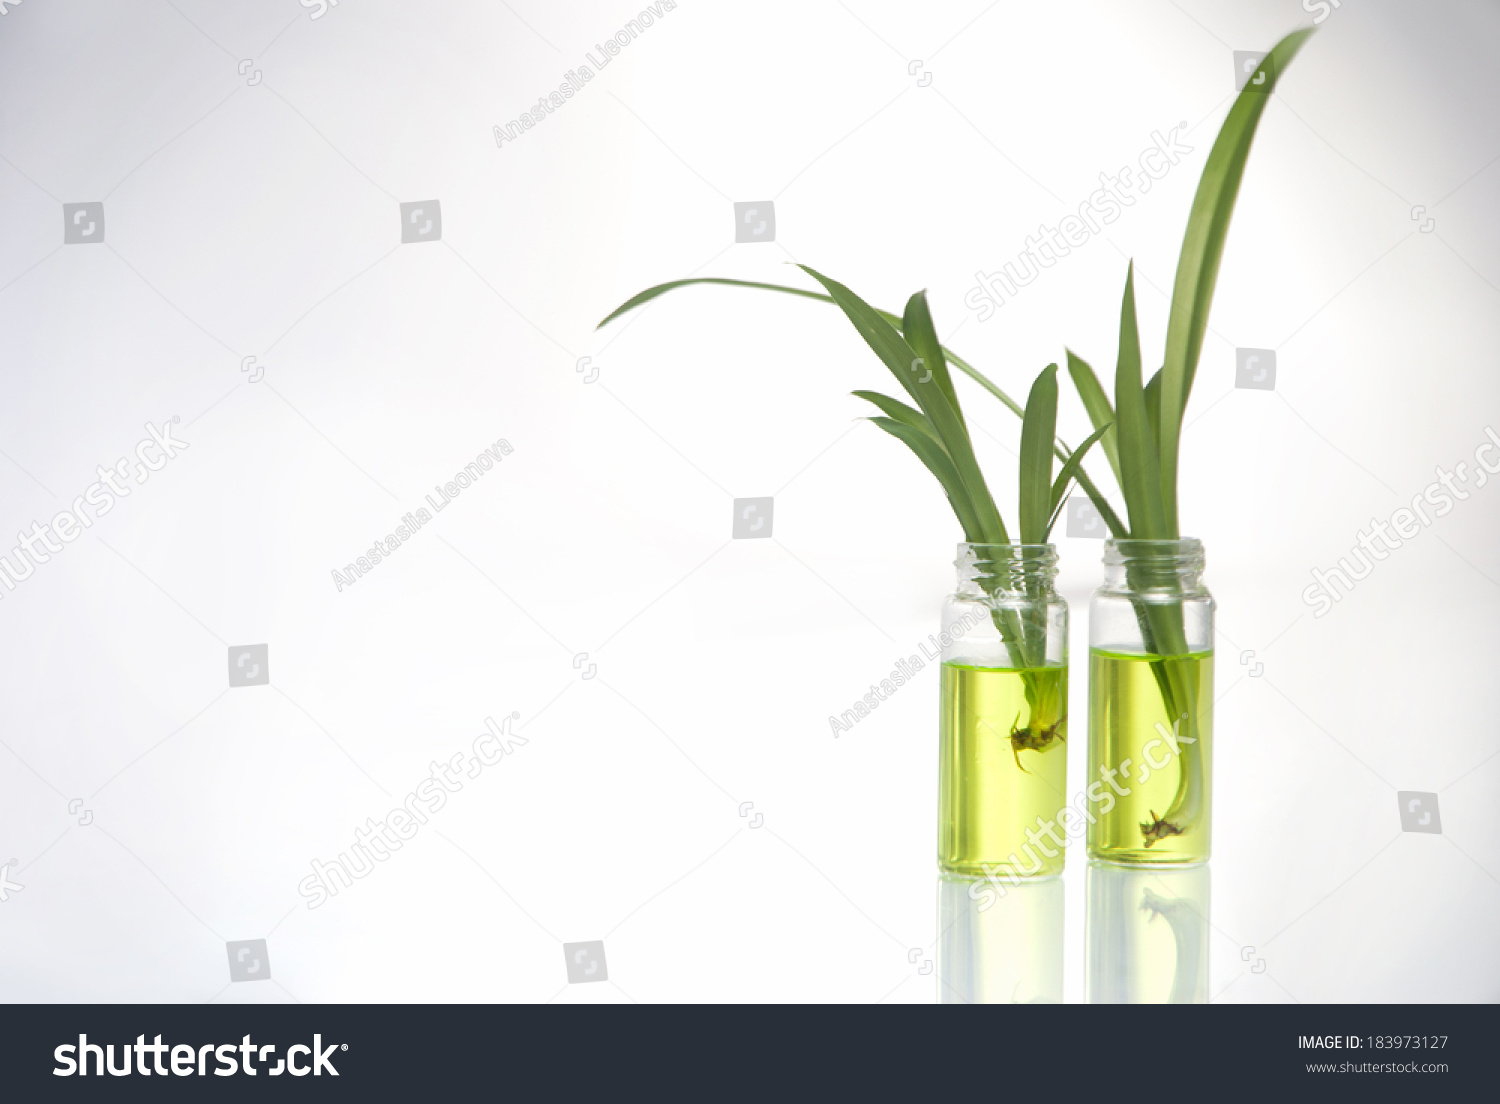 fast plants lab background Catalase enzyme lab background information  liver and other living tissues contain the enzyme catalase this enzyme breaks down hydrogen peroxide, which is a harmful by-product of the process of cellular respiration if it builds up in concentration in the cells.